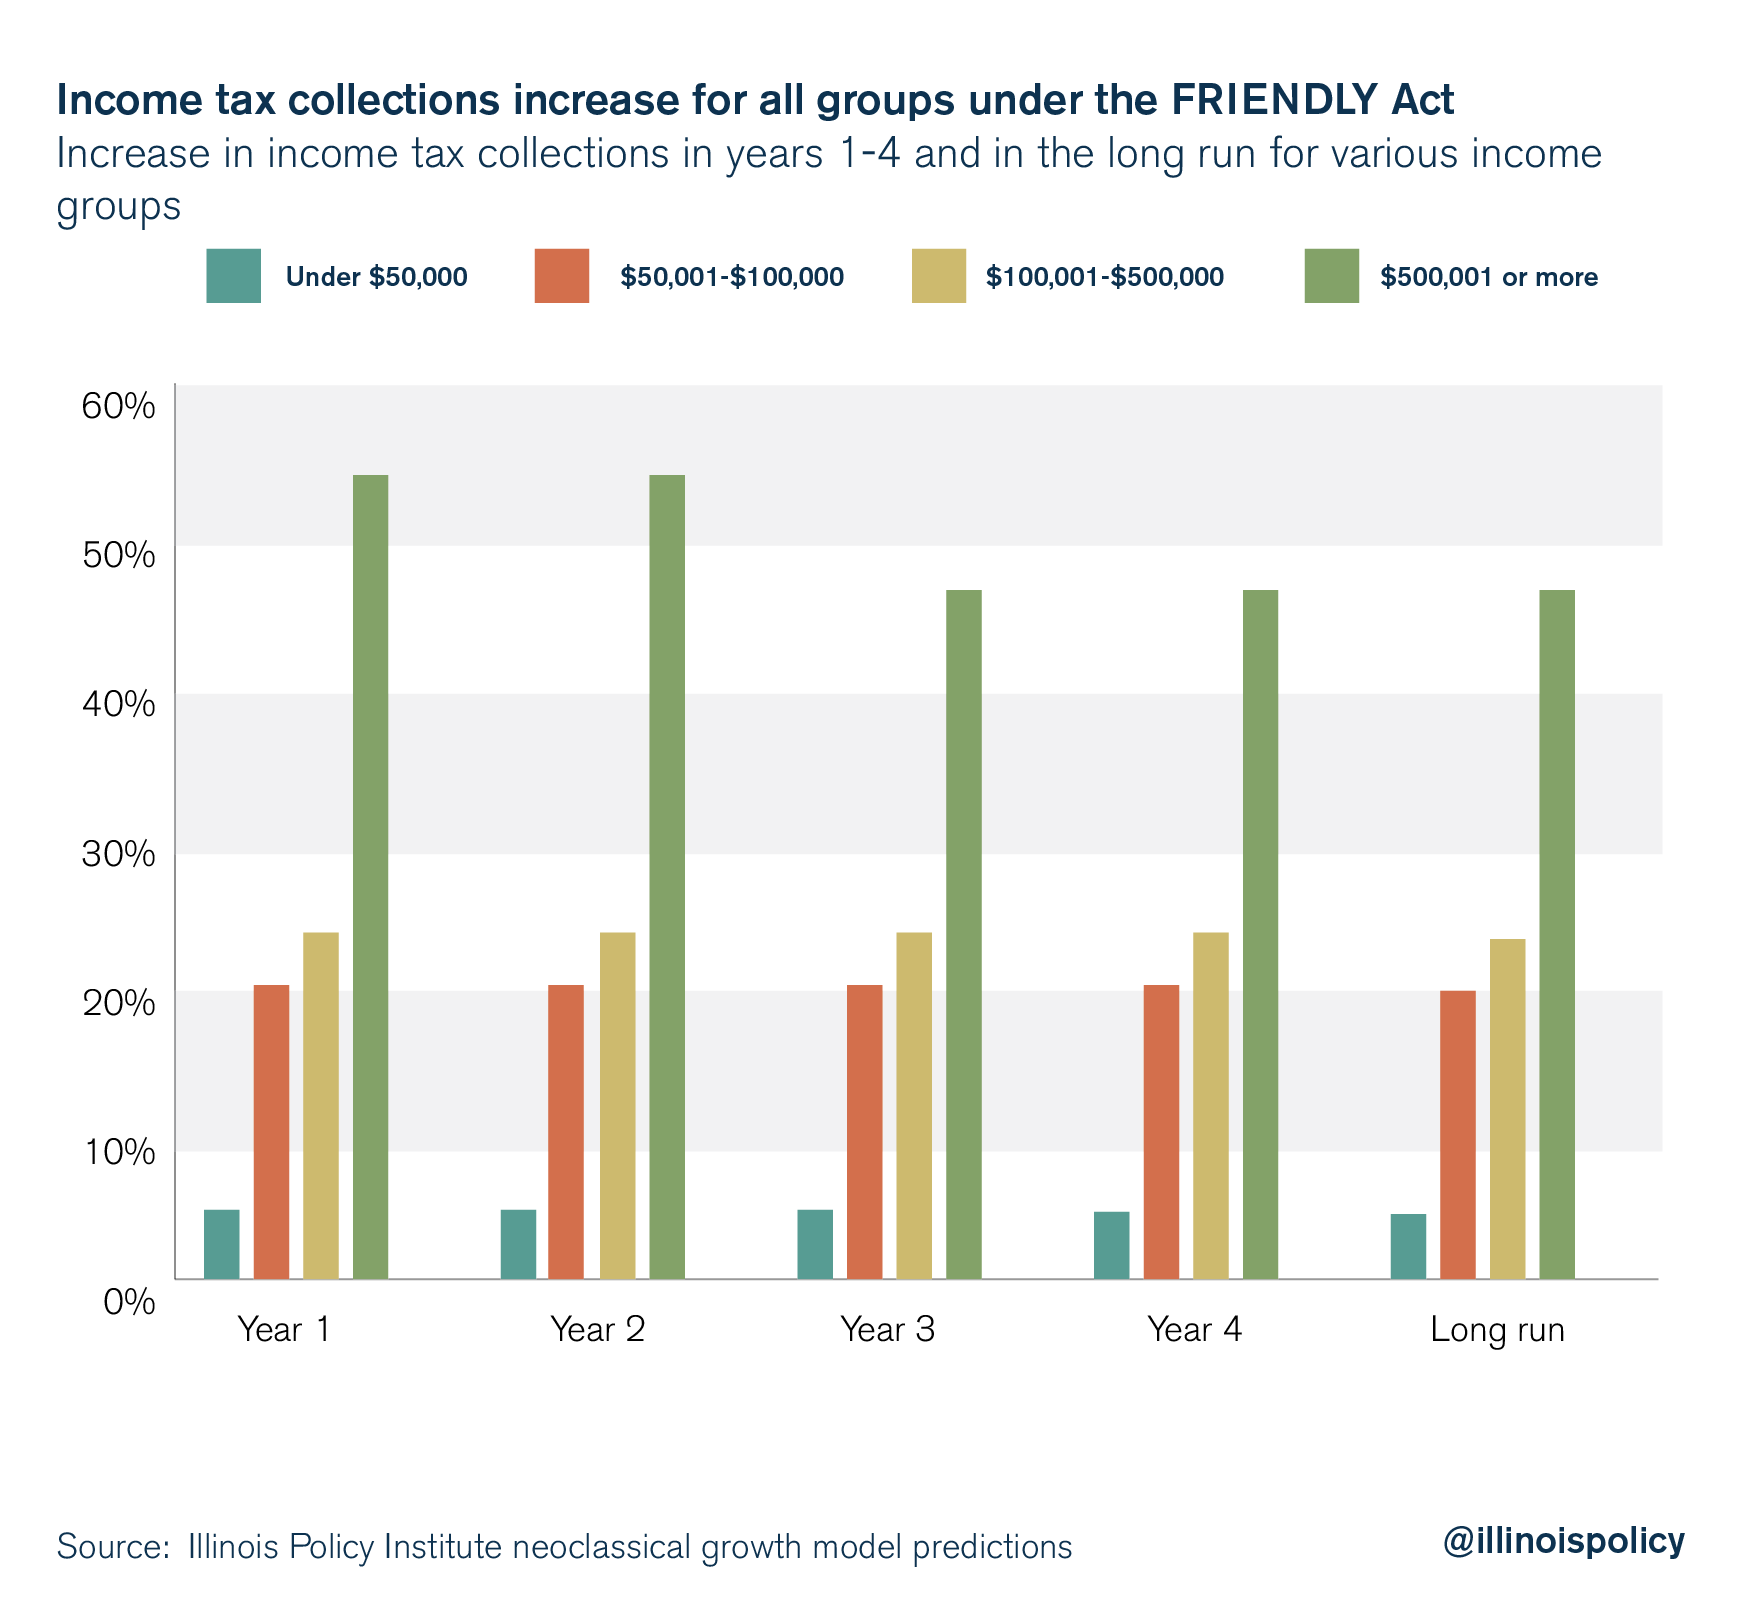 Income tax collections increase for all groups under the friendly tax